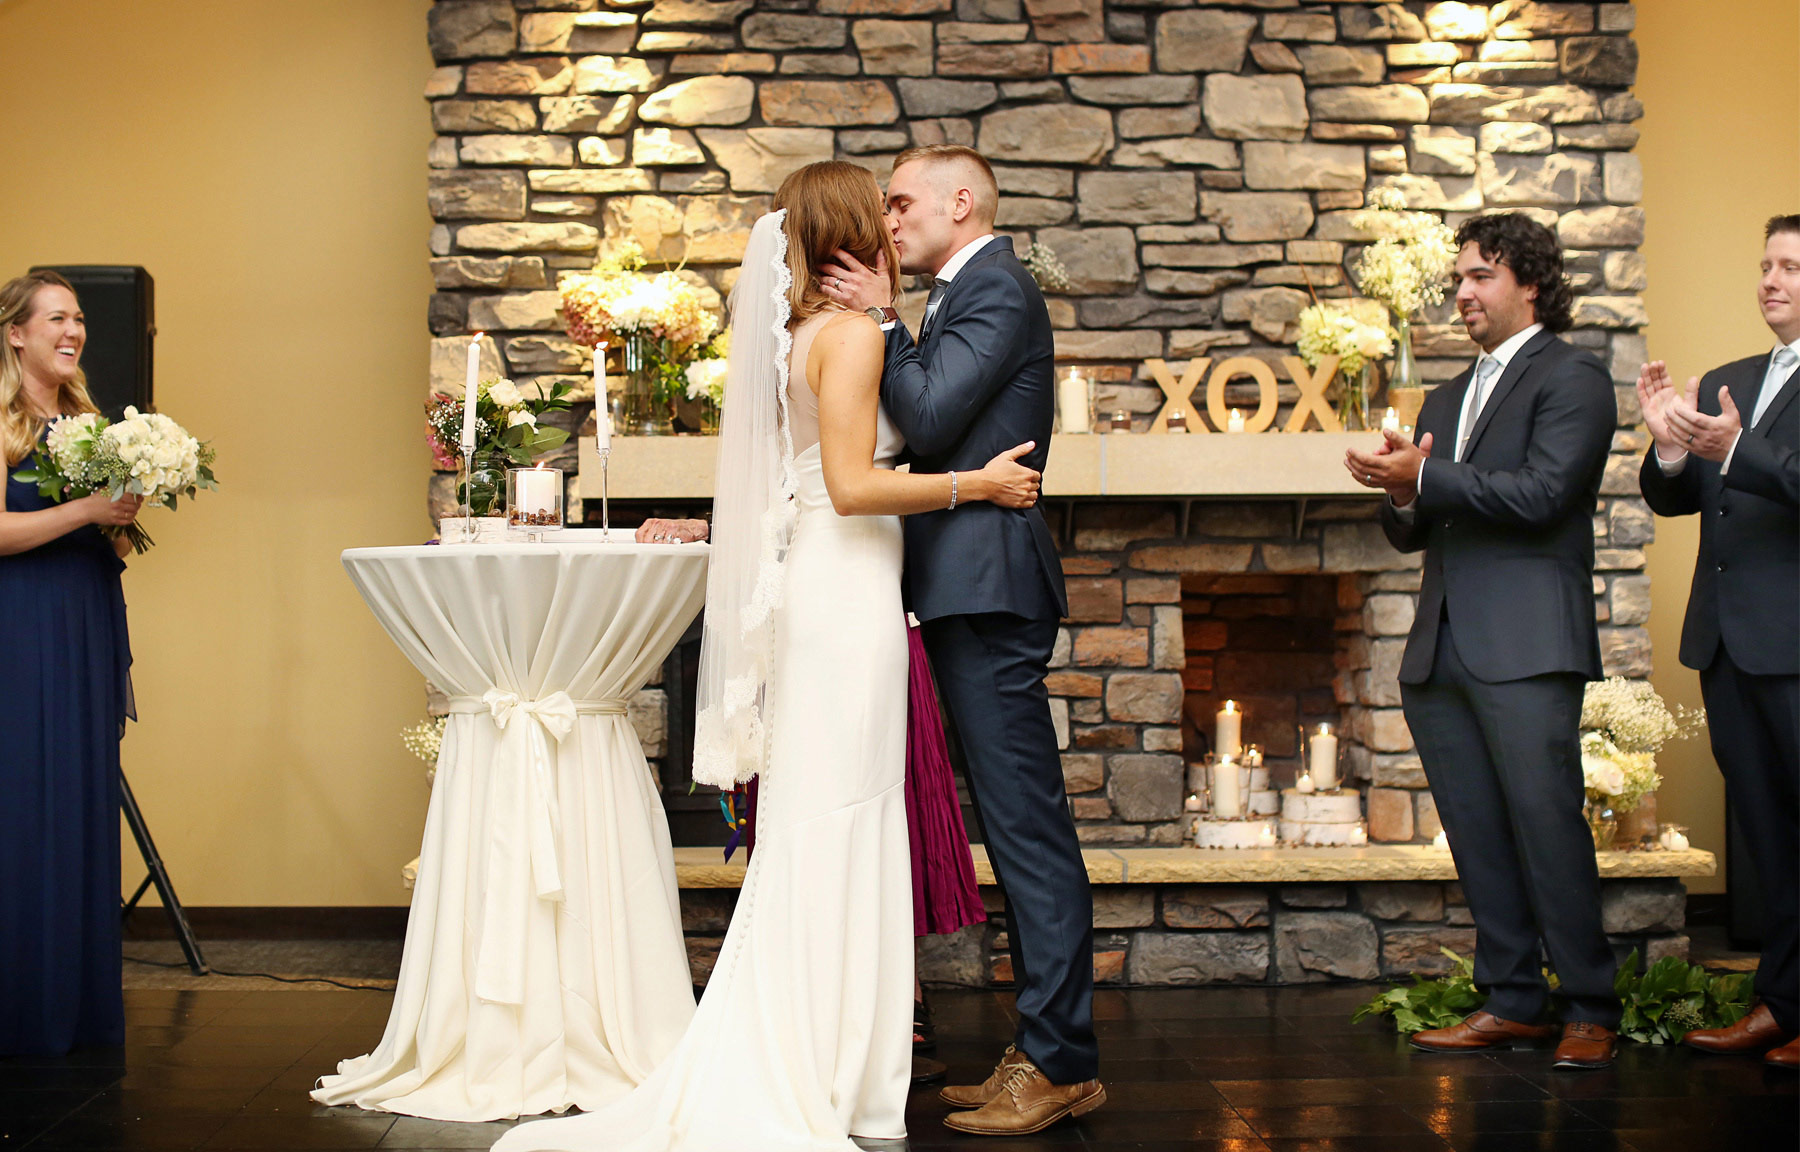 19-Dellwood-Minnesota-Wedding-Photographer-by-Andrew-Vick-Photography-Summer-Country-Club-Ceremony-Bride-Groom-Kiss-Sarah-and-Landon.jpg